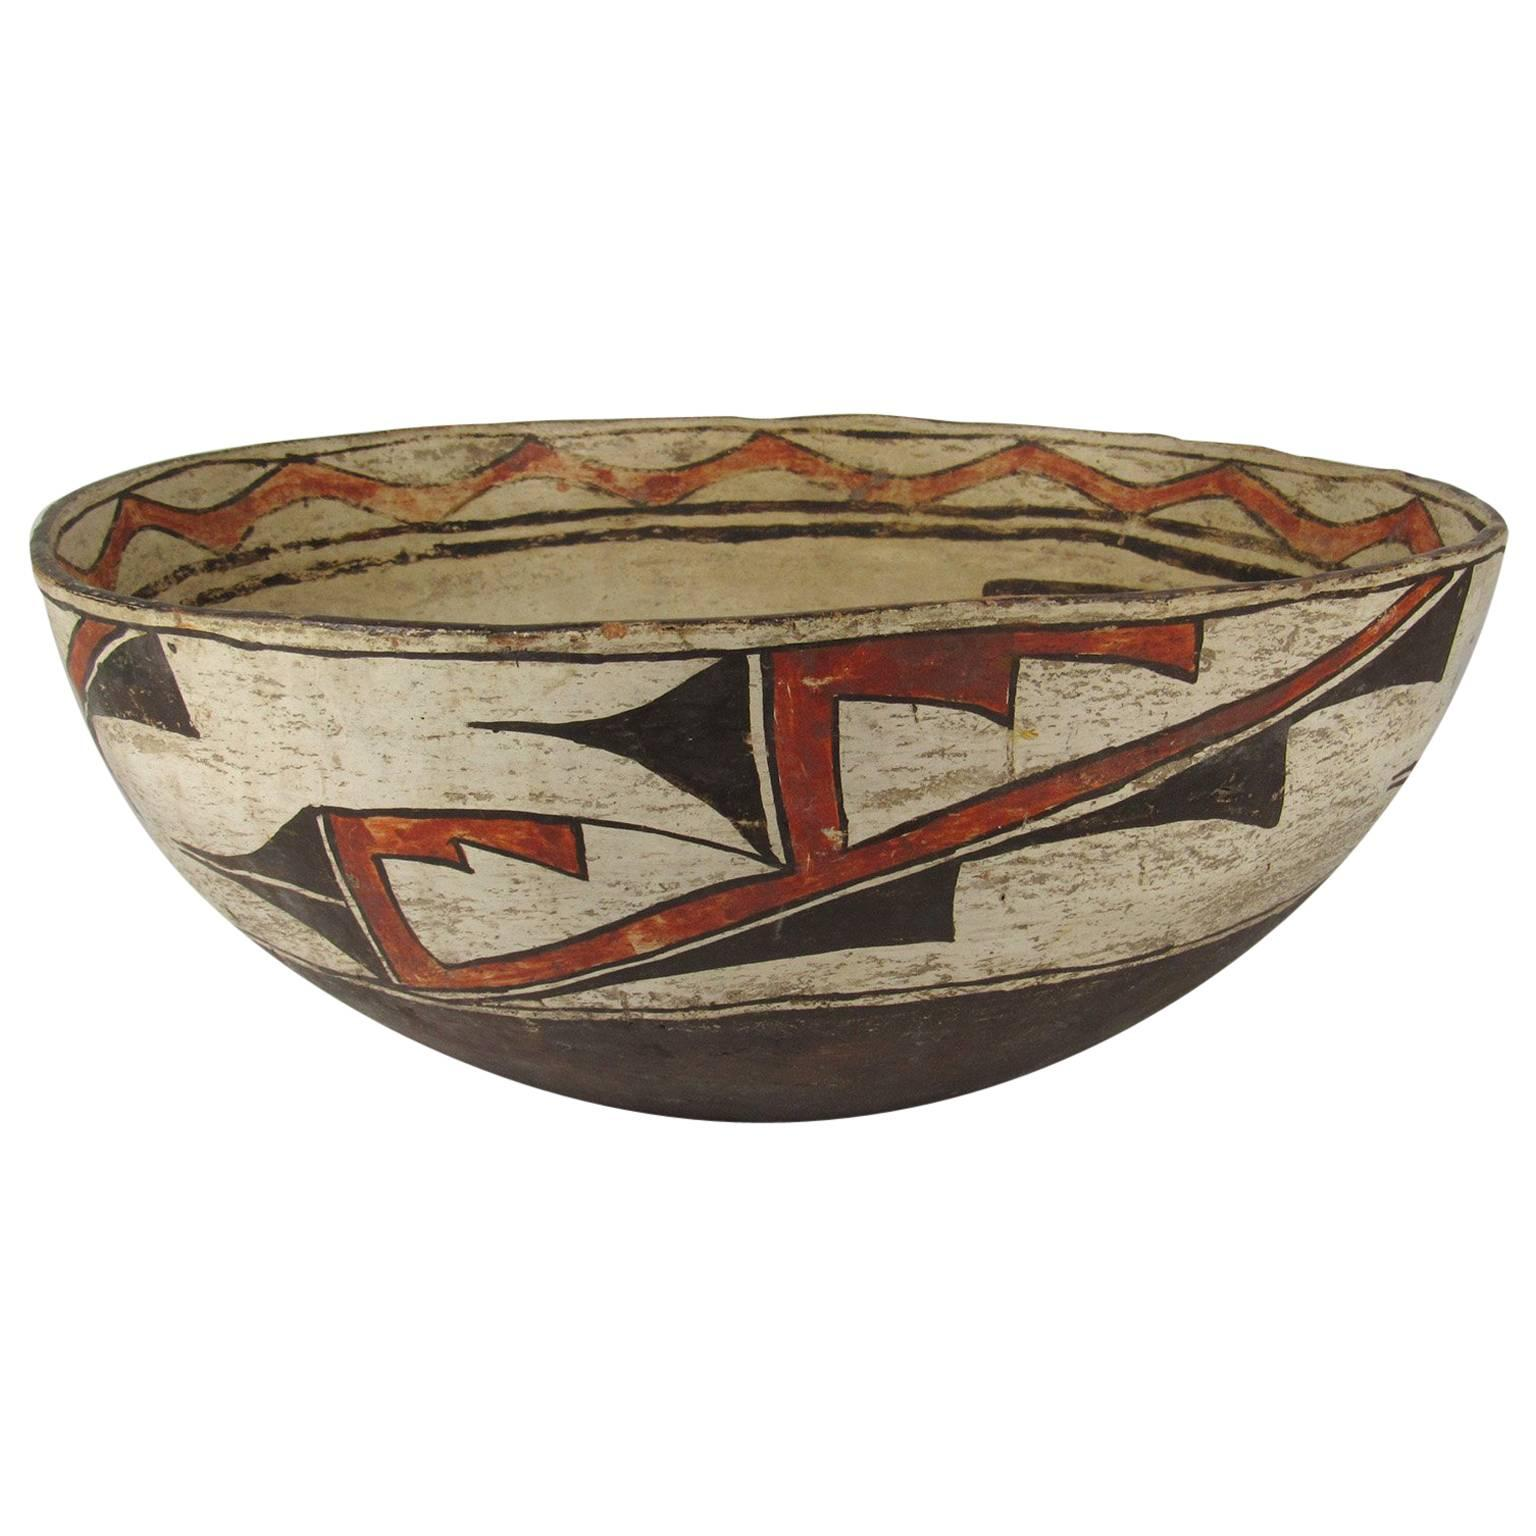 Antique Native American Zuni Polychrome Earthenware Bowl With Deer  Decoration For Sale